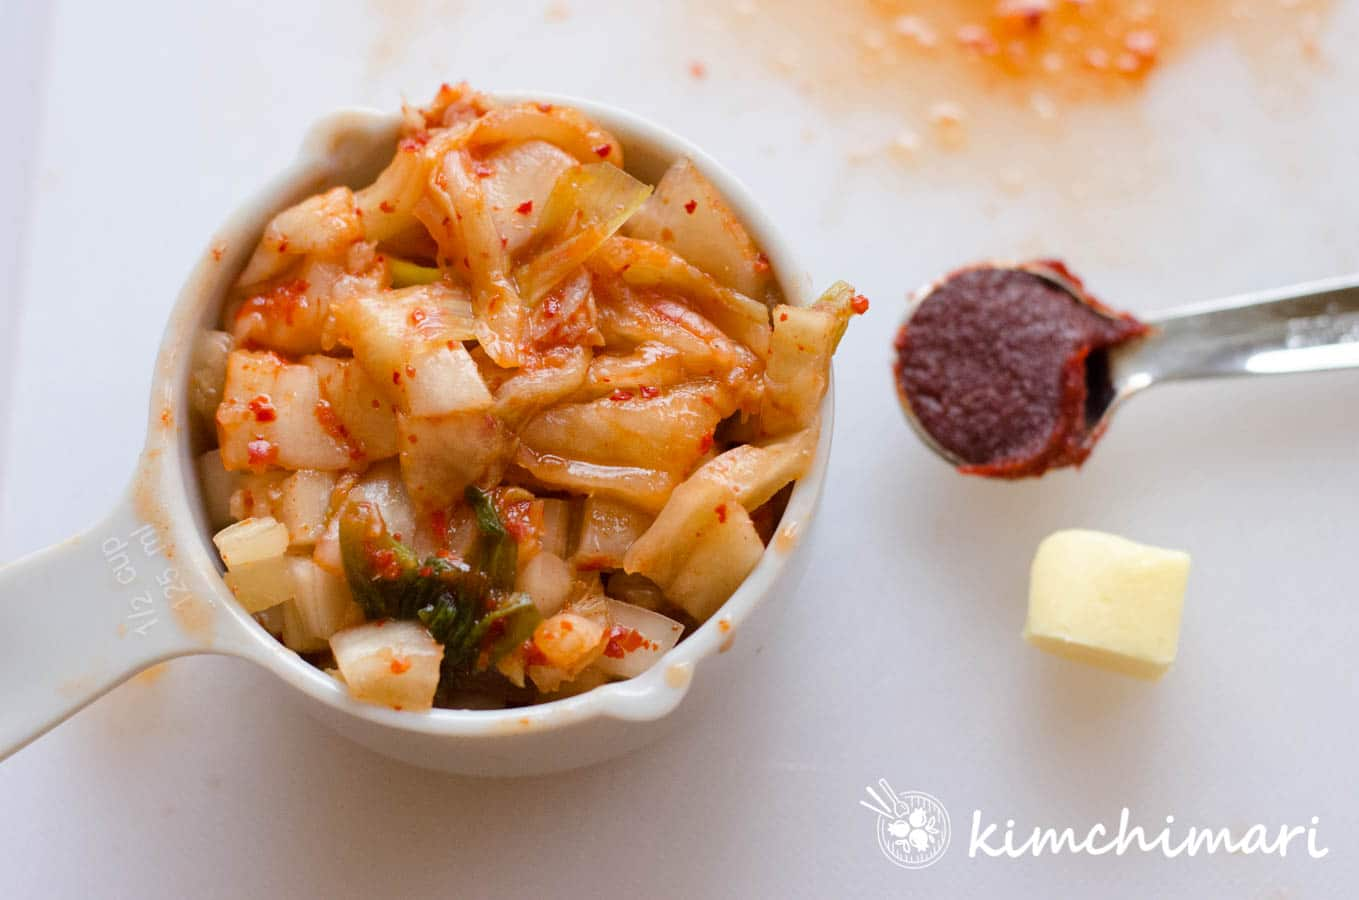 chopped kimchi, gochujang and butter measured in cup and spoons